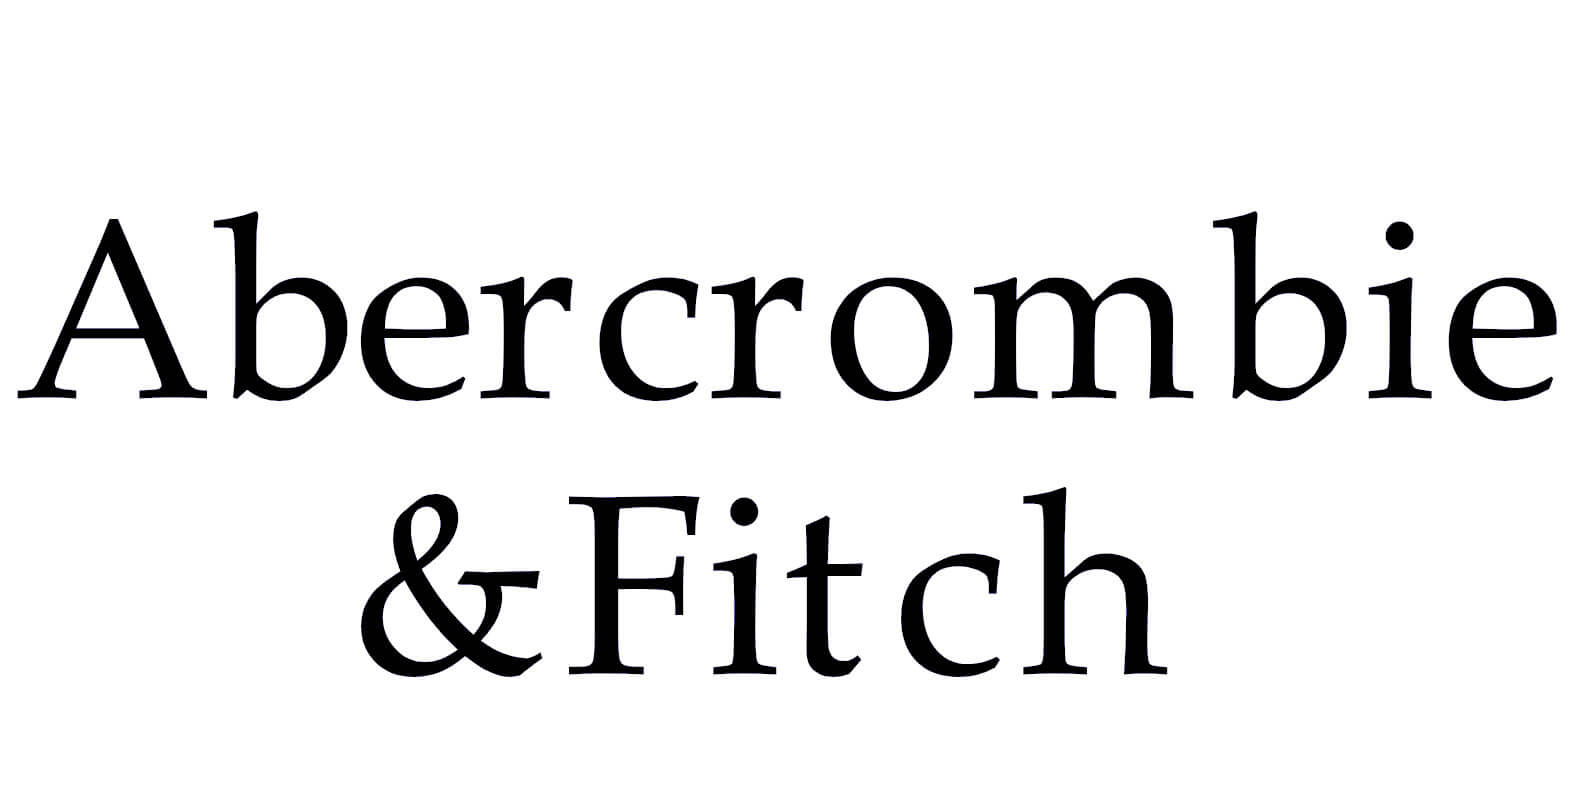 abercrombie & fitch_1.jpg